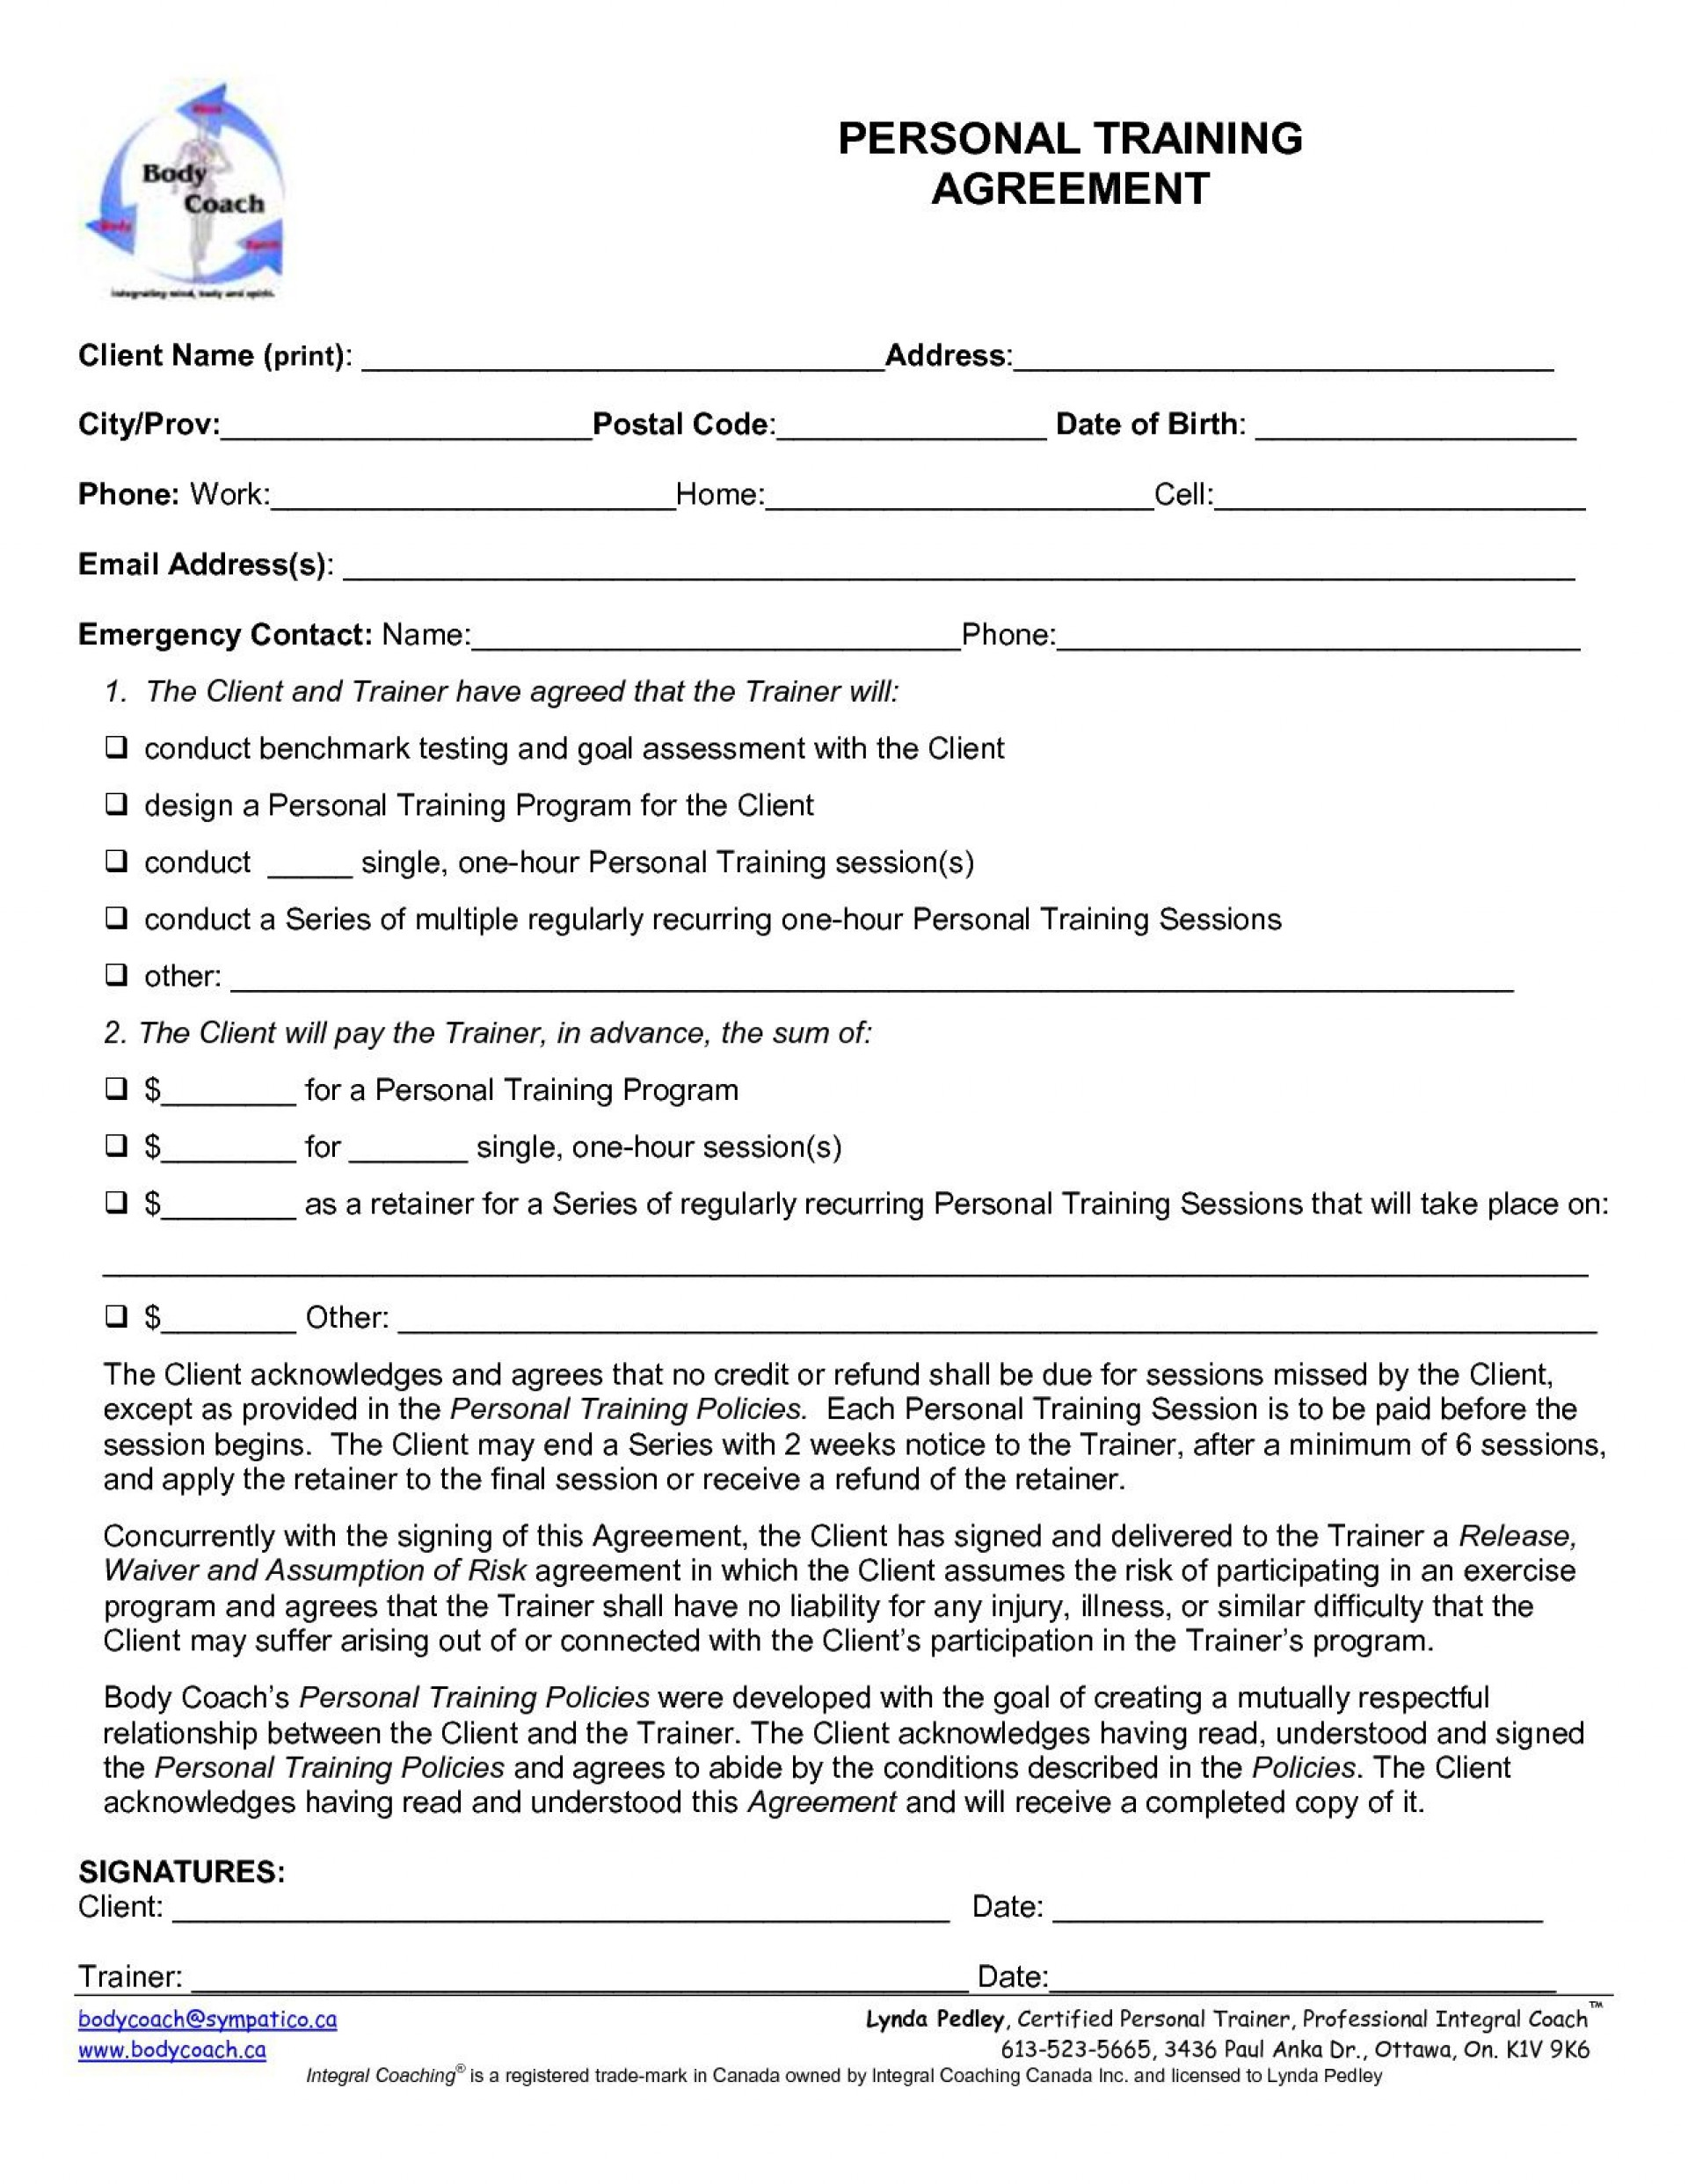 003 Incredible Snow Removal Contract Template Photo  Templates Free Printable Simple Seasonal Plow Agreement1920